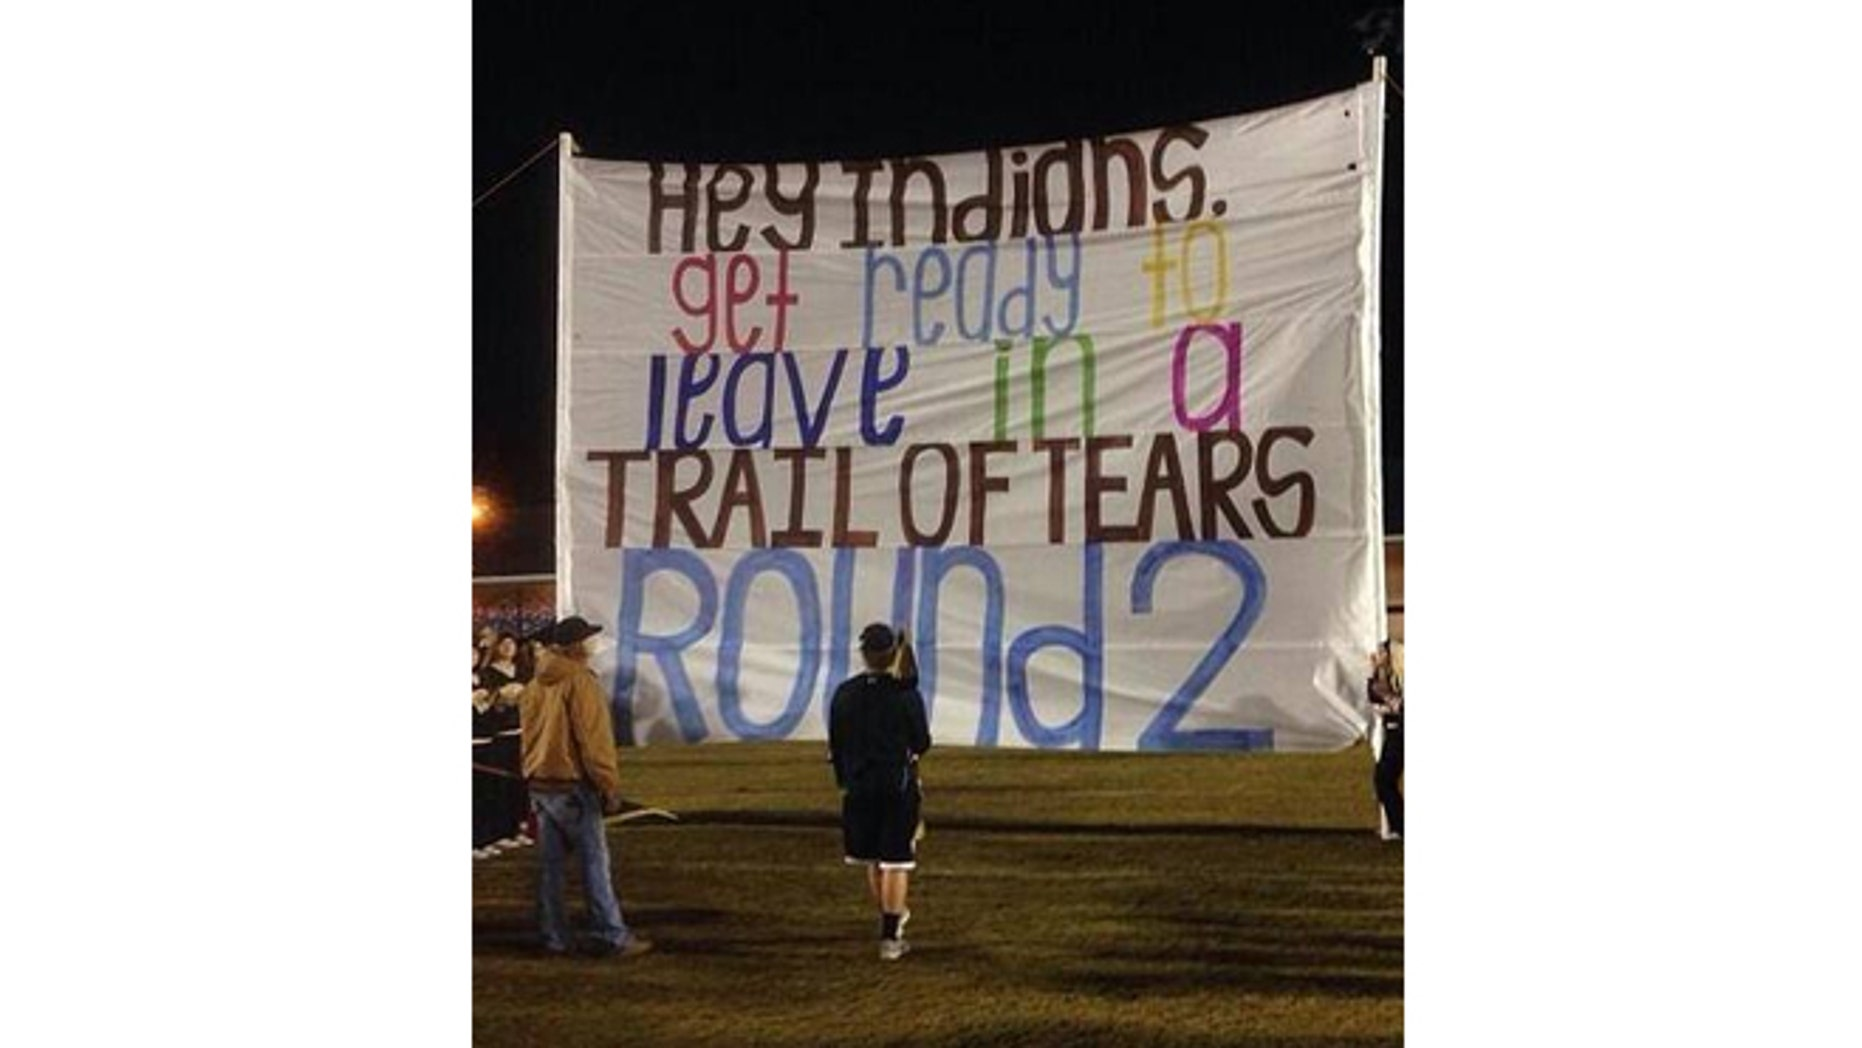 An Alabama high school was forced to apologize for a banner that some fans considered offensive.